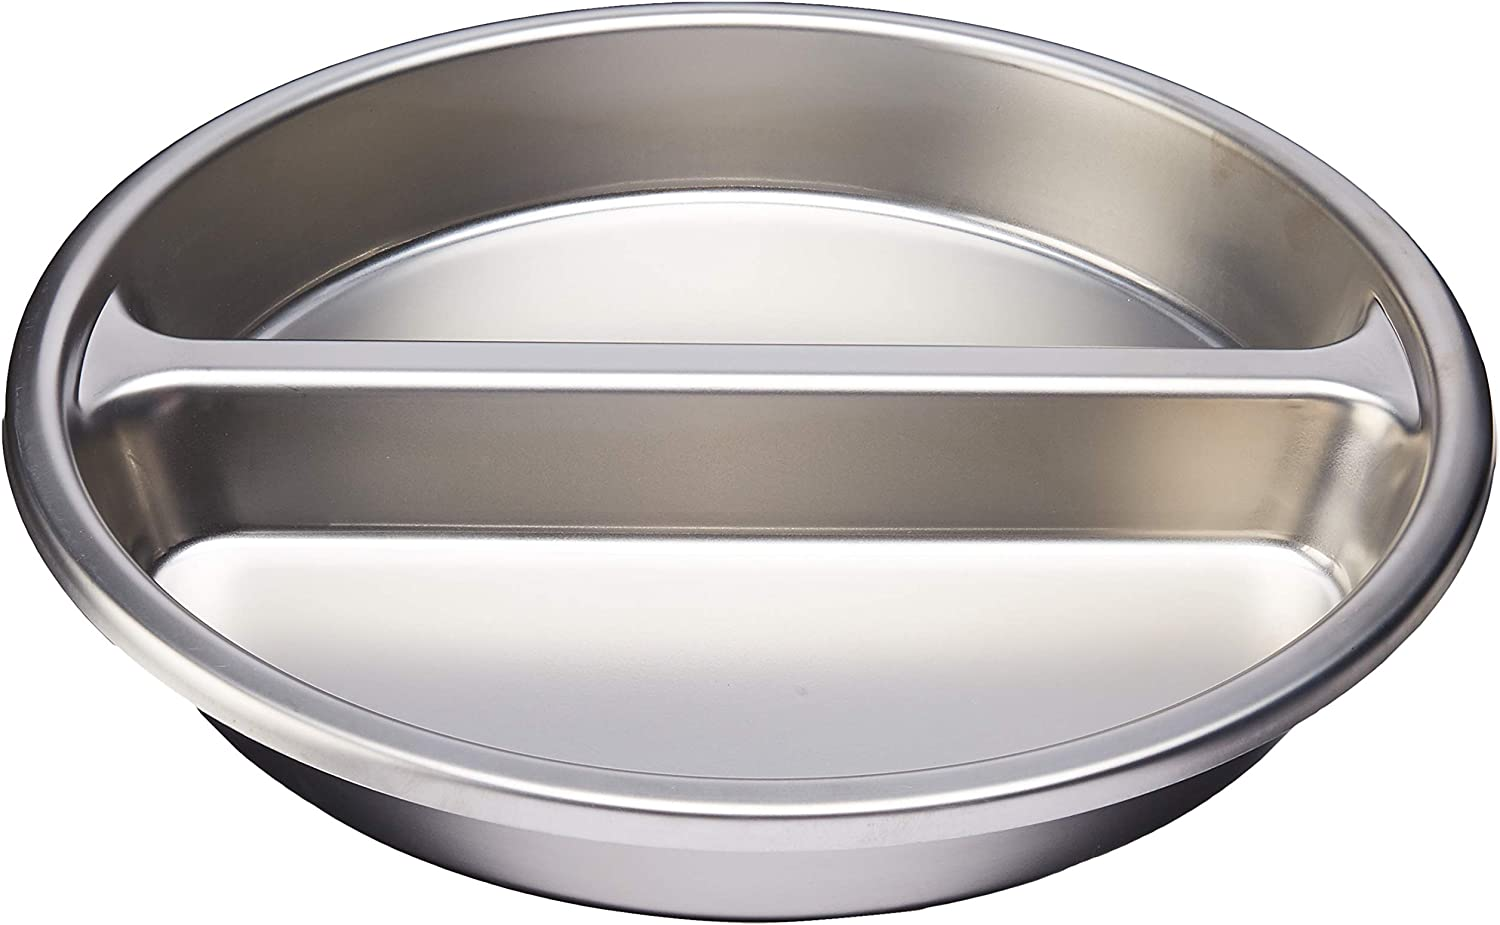 Winco Round Divided Food Pan, Stainless Steel